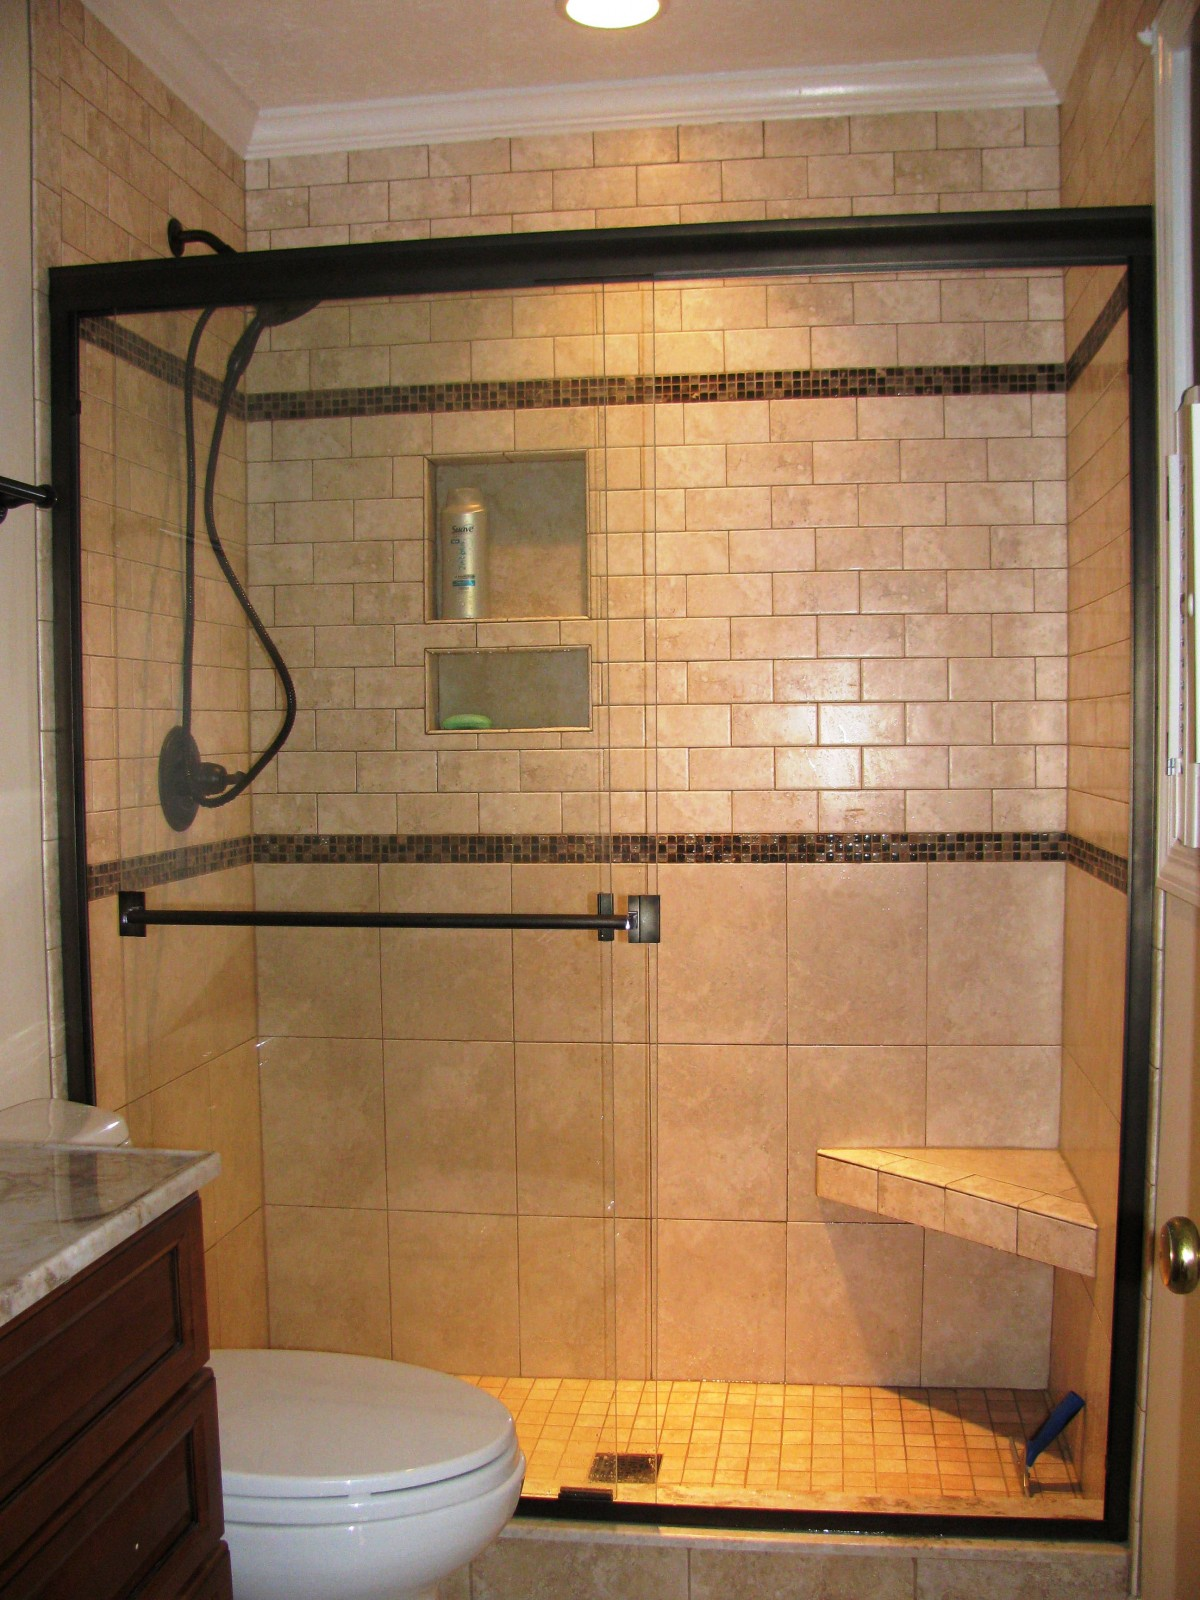 Shower Tile Ideas 30 shower tile ideas on a budget